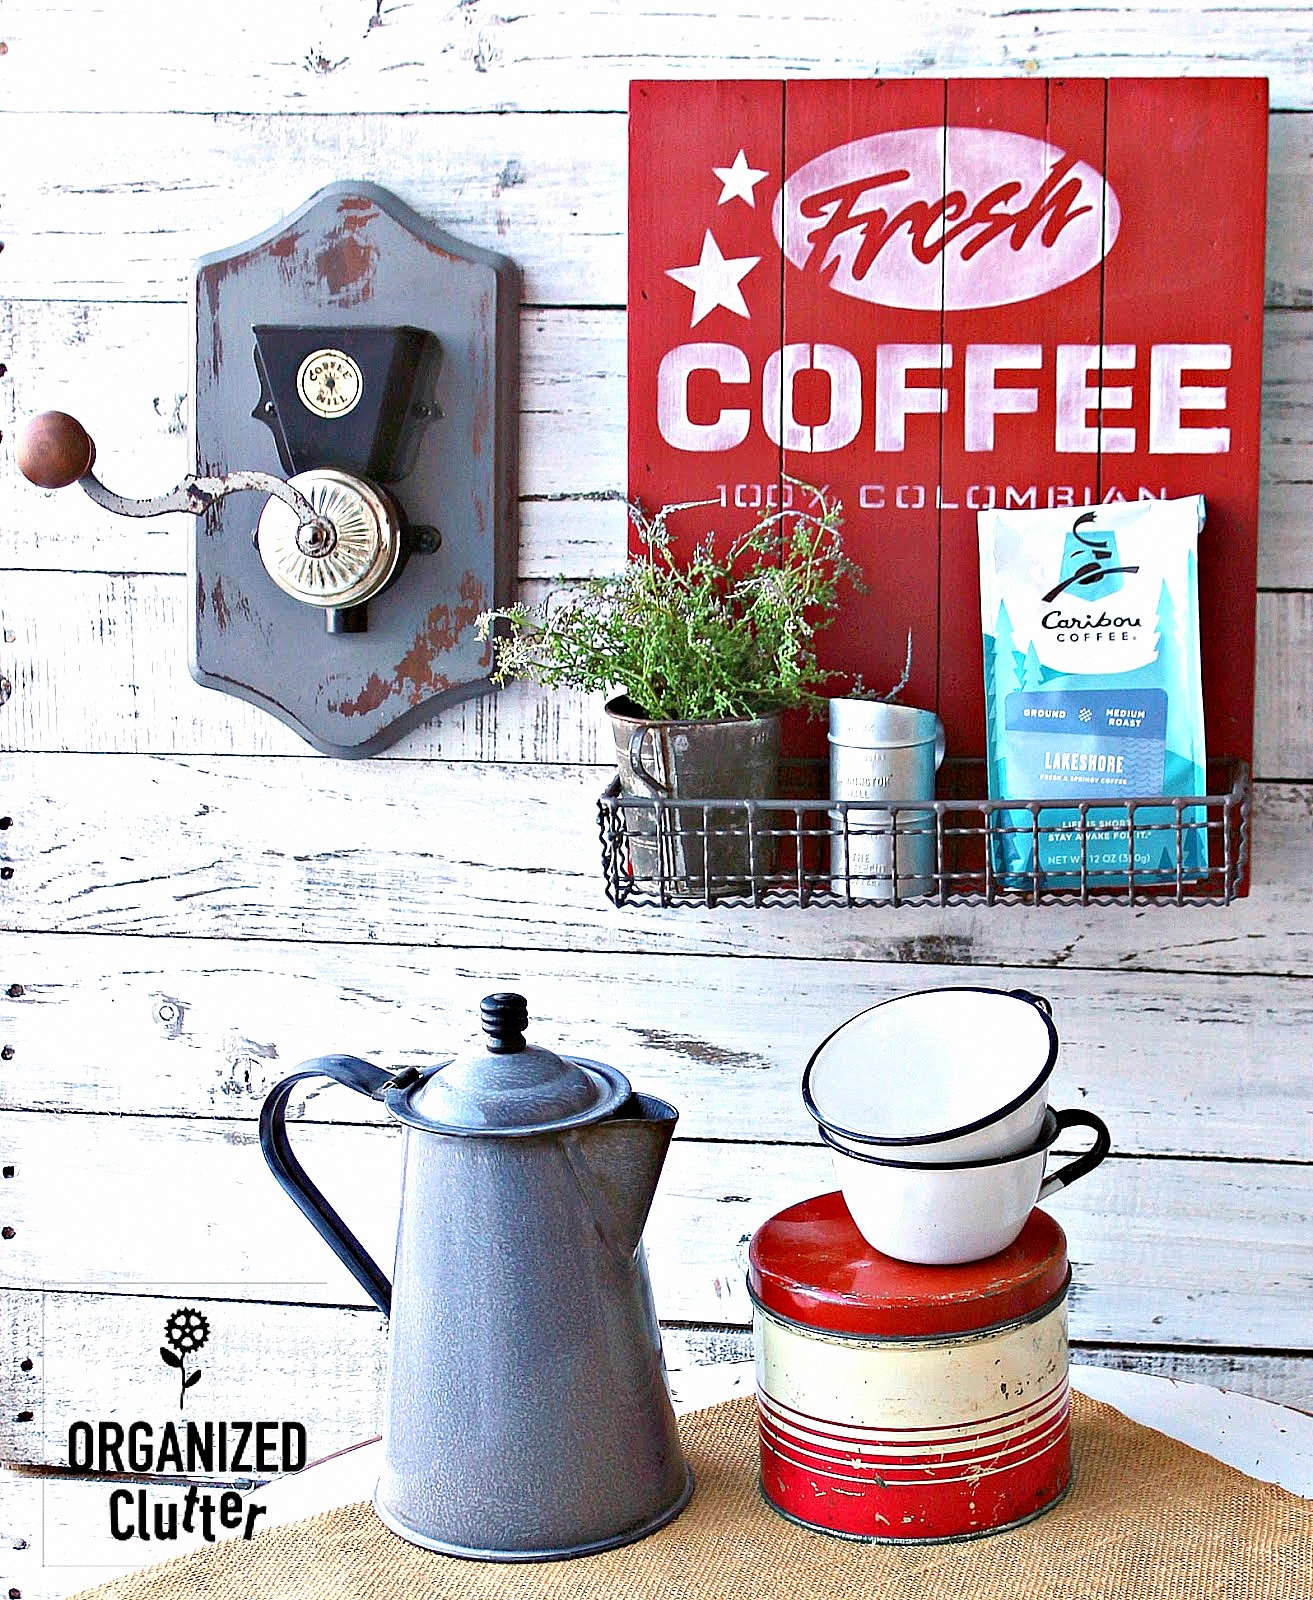 Coffee decor by Organized Clutter, featured on DIY Salvaged Junk Projects 513 on Funky Junk Interiors, part of an up-cycled link party!